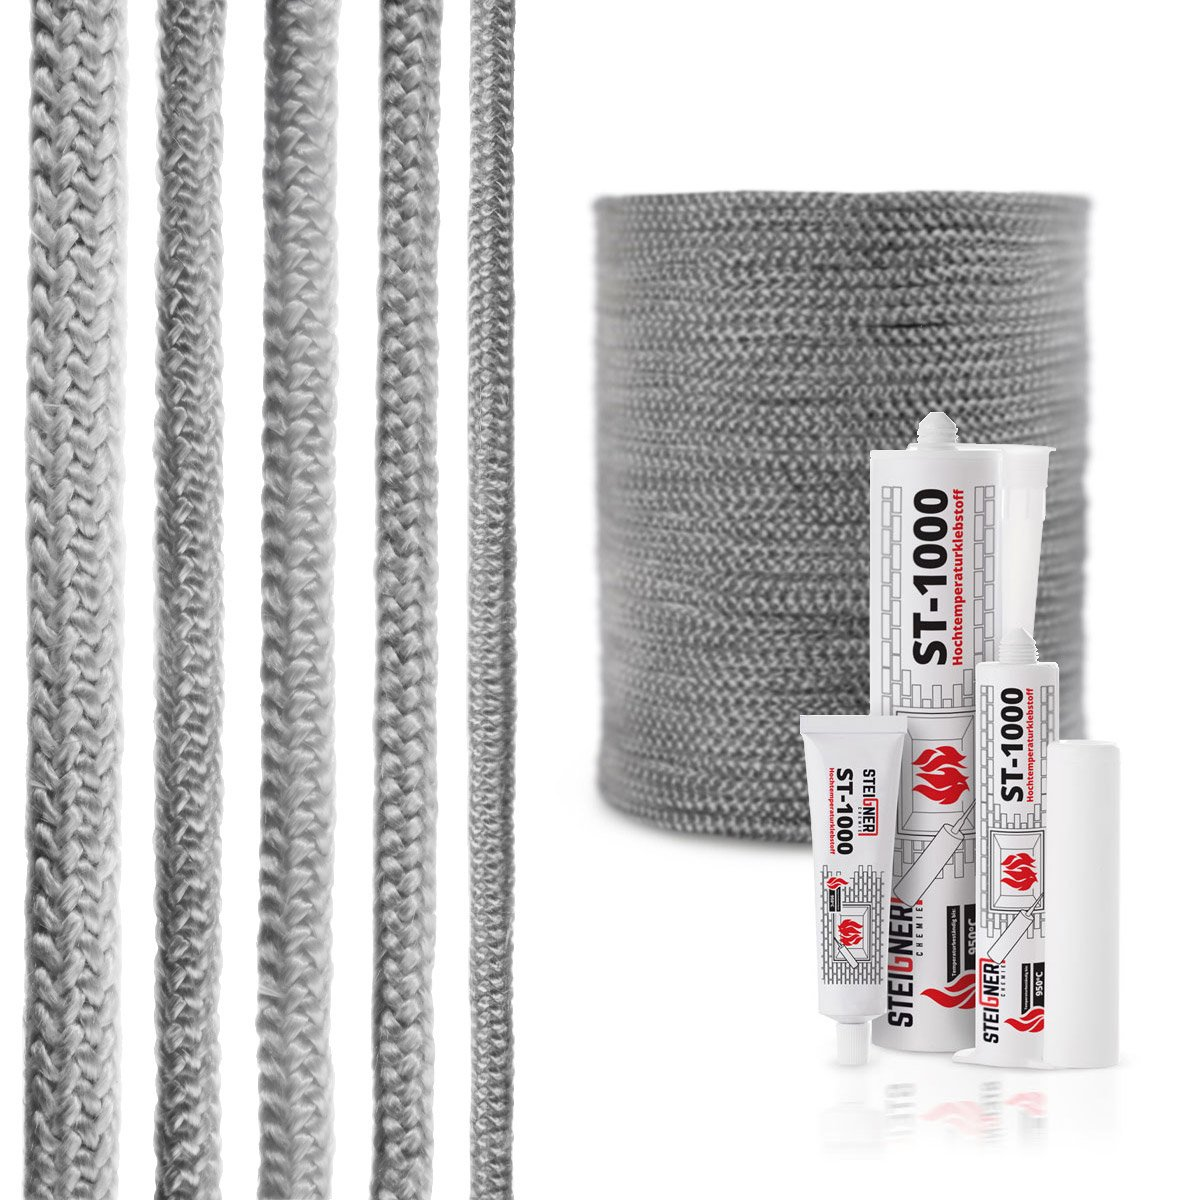 STEIGNER Fiberglass Rope SKD02-10 1, 5 m 10 mm Dark Gray With Thermal Mounting Adhesive Temperature Resistant up to 550°C or 1022°F